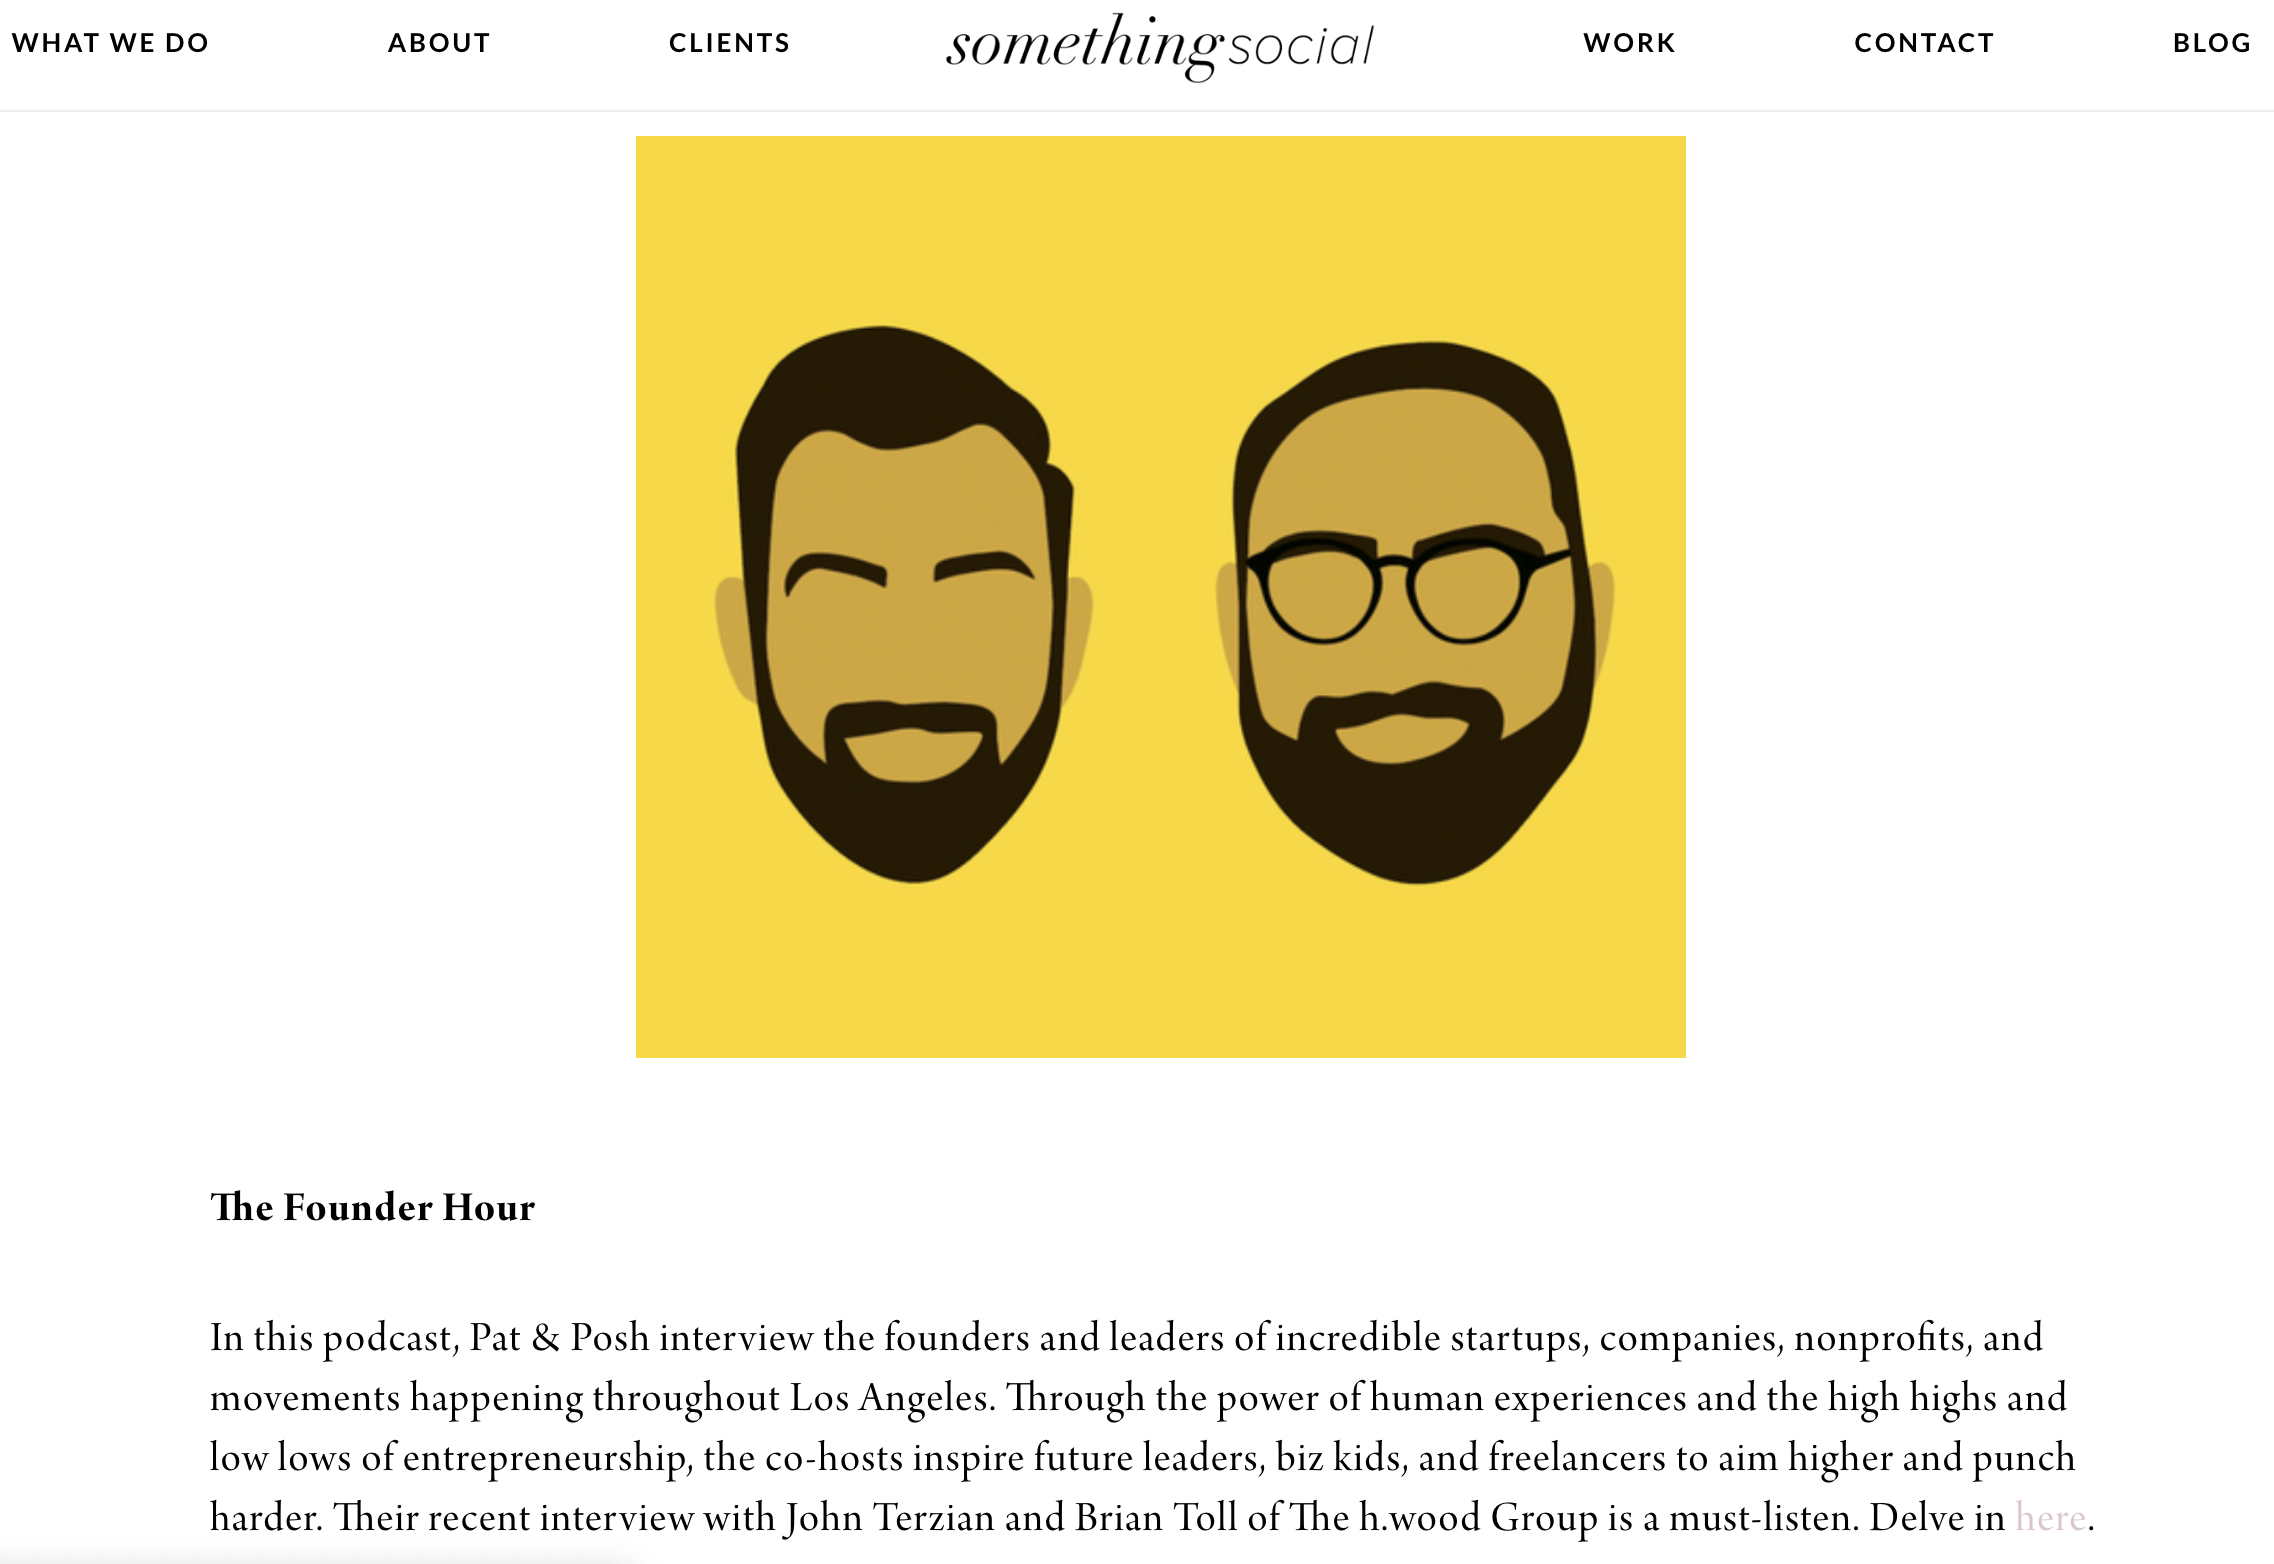 Something Social, The Founder Hour, Top Podcasts